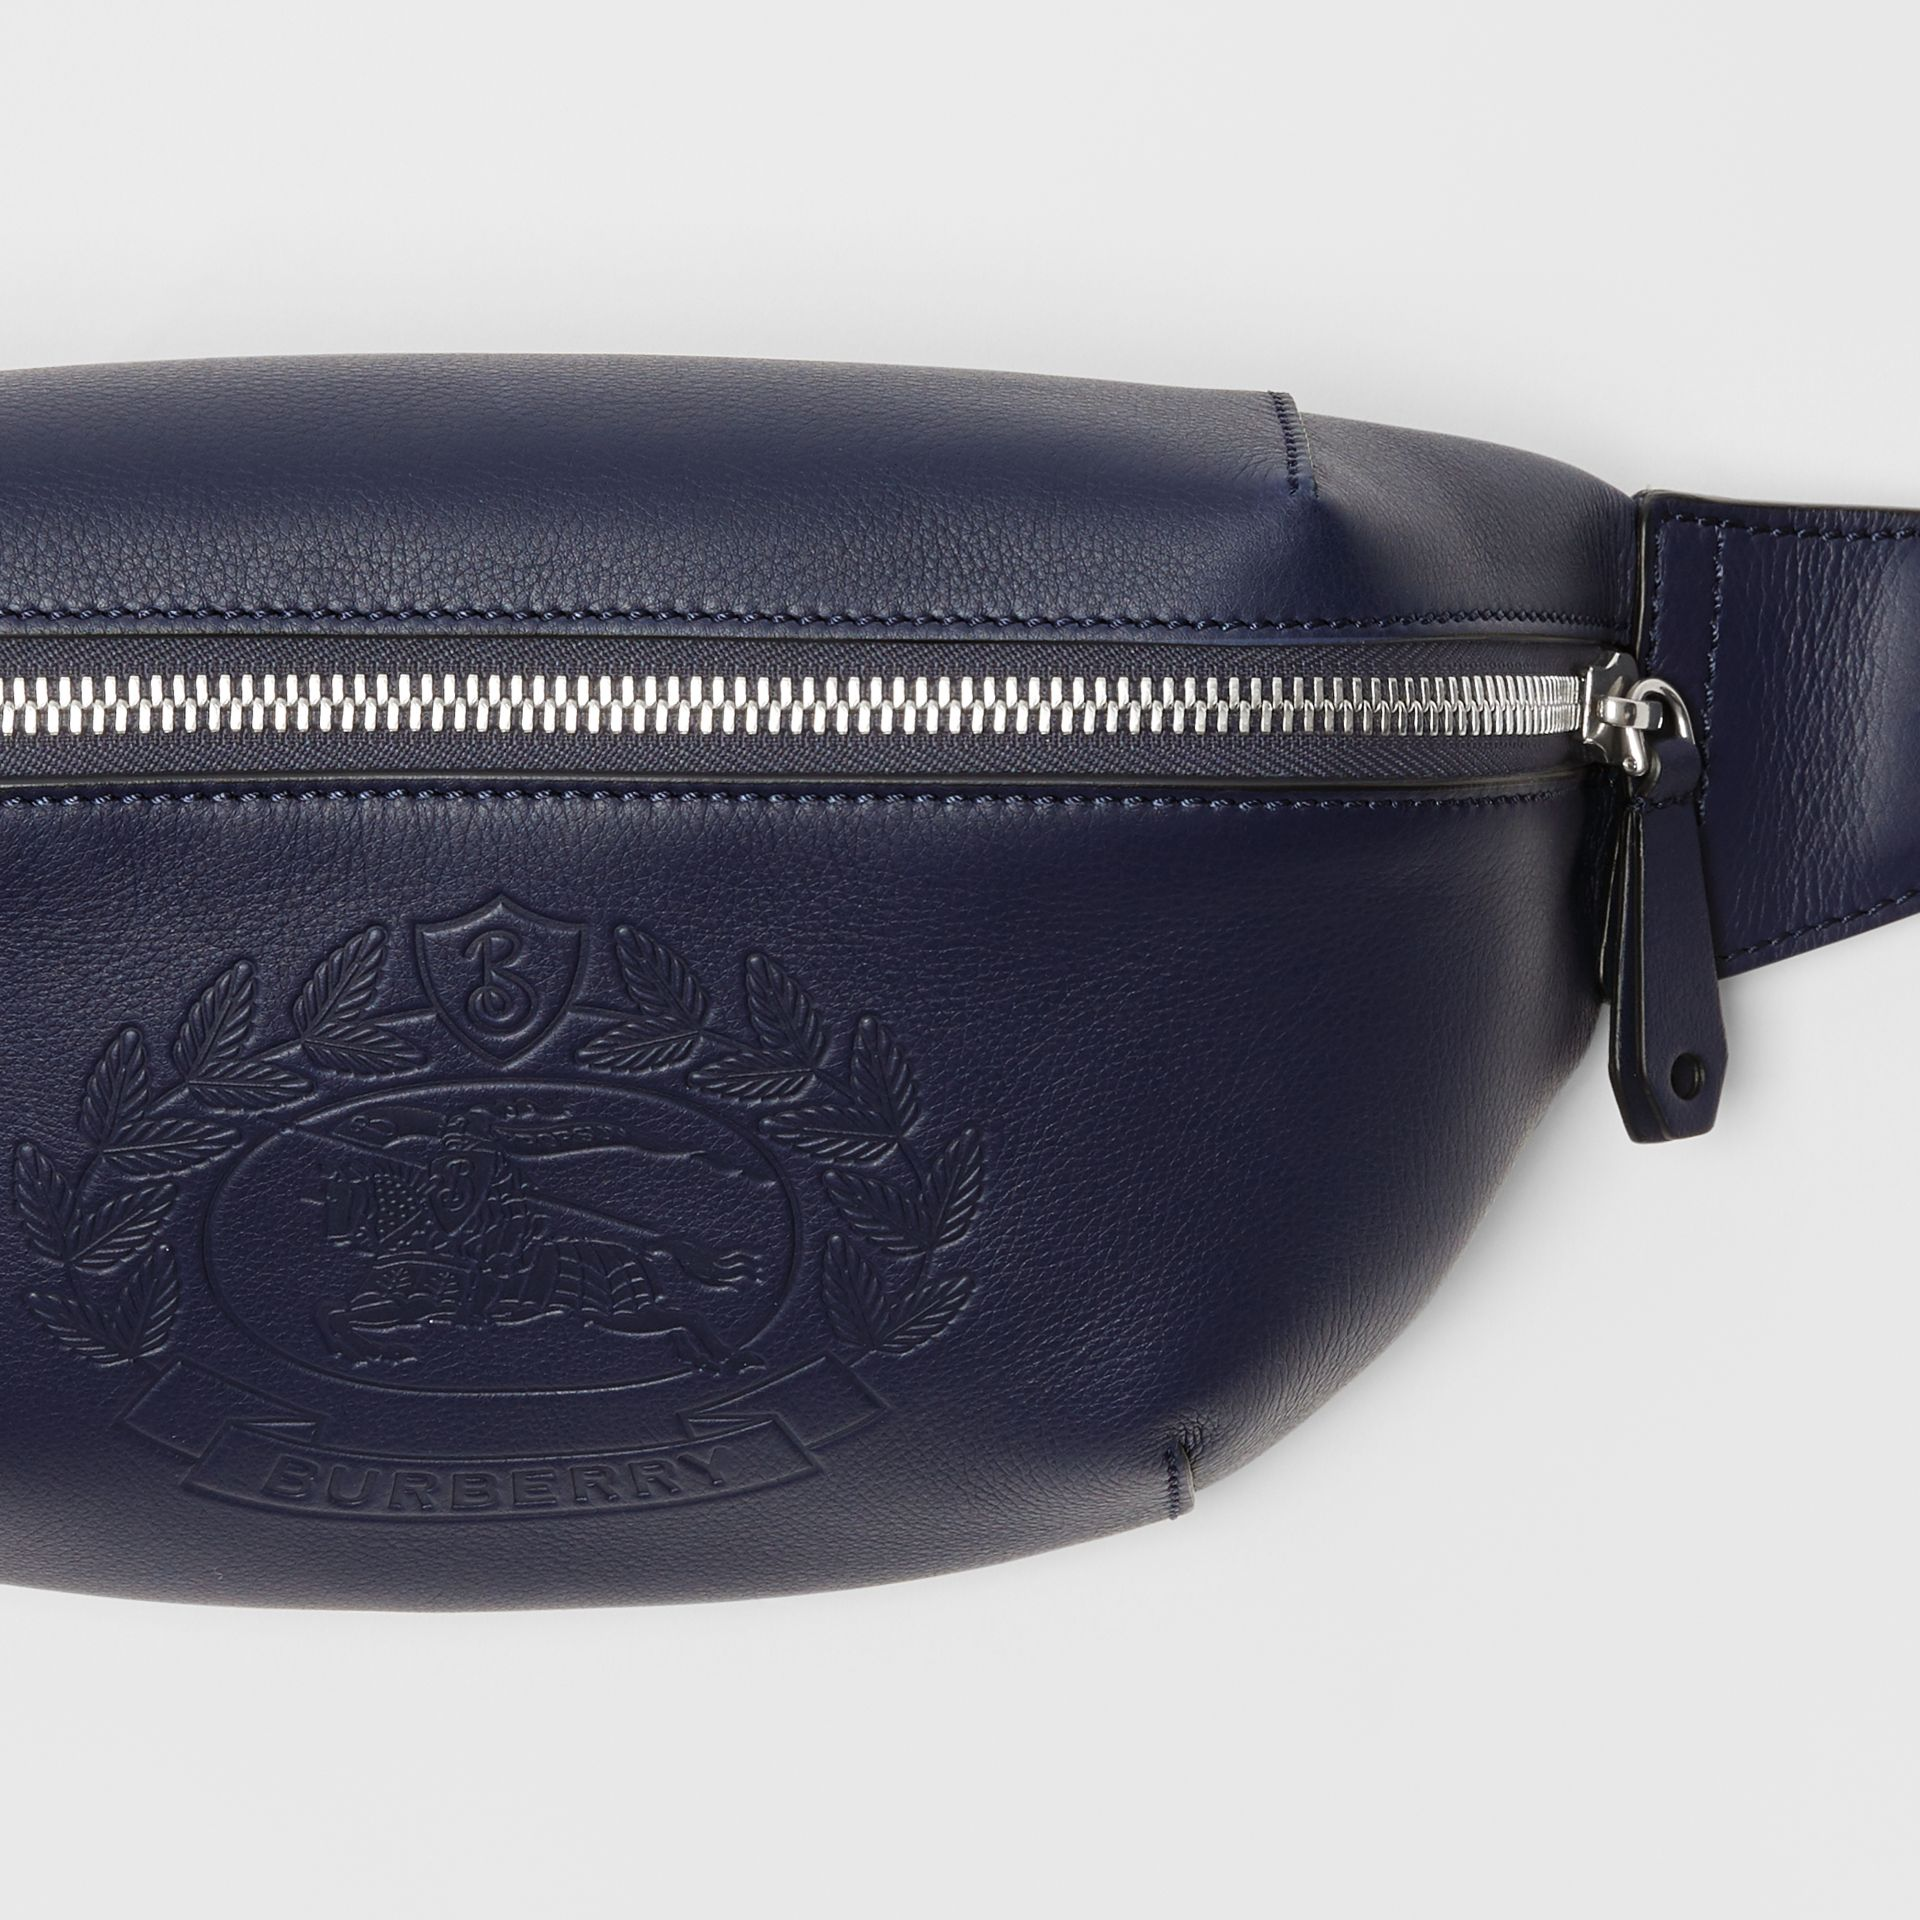 Medium Embossed Crest Leather Bum Bag in Regency Blue | Burberry Australia - gallery image 1